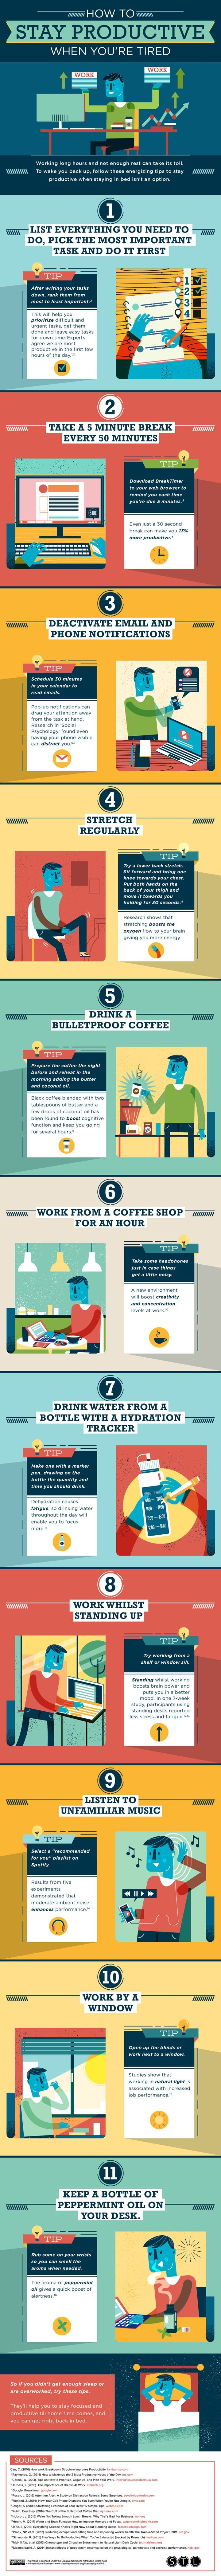 How to stay productive (when you're tired) #infographic